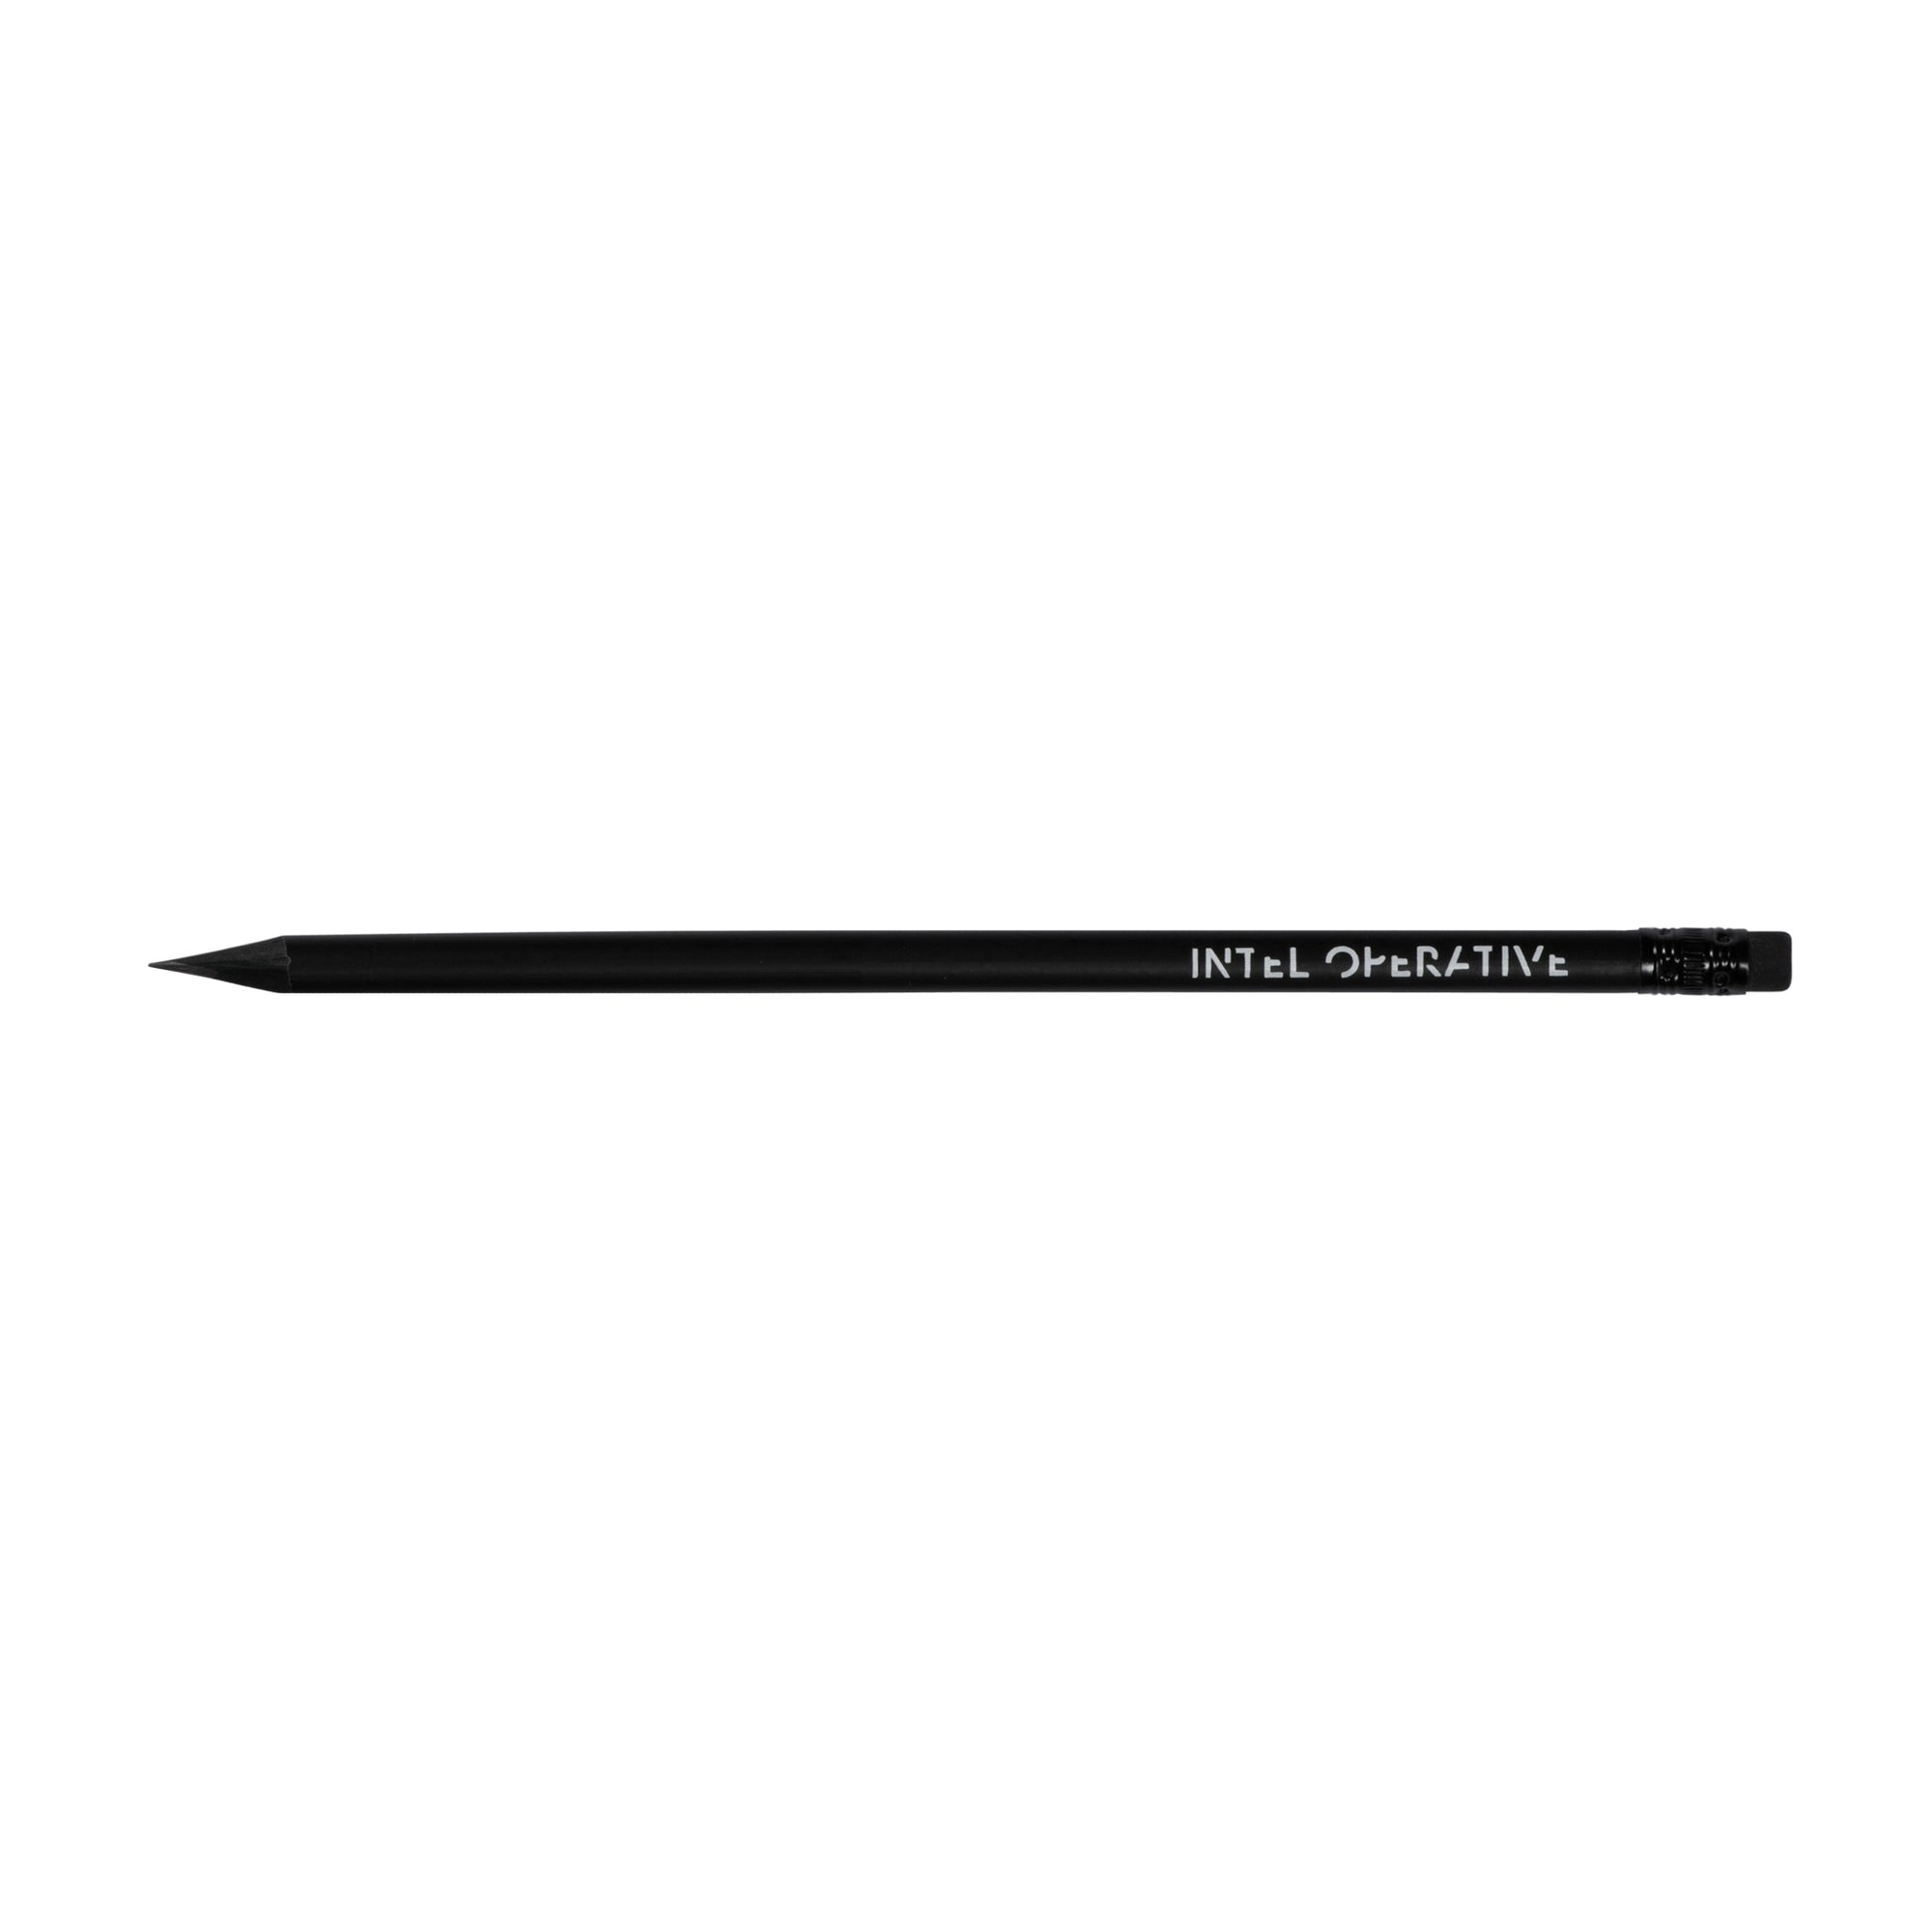 SPYSCAPE Intel Operative Pencil